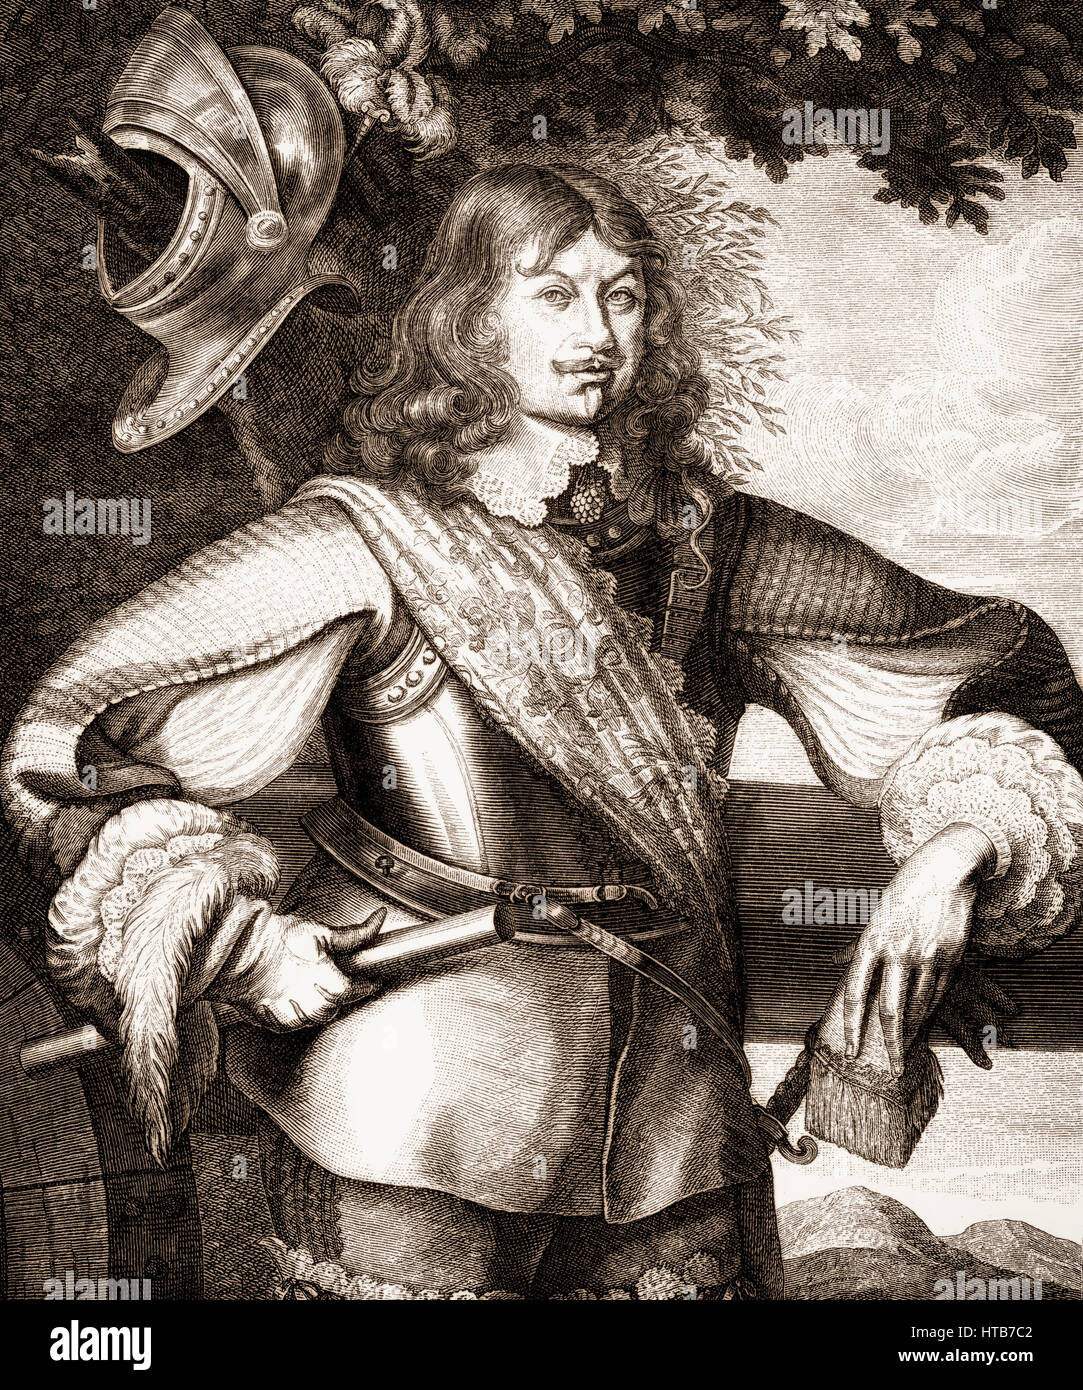 Carl Gustaf Wrangel, 1613 - 1676, a Swedish noble, statesman and military commander in the Thirty Years' War - Stock Image